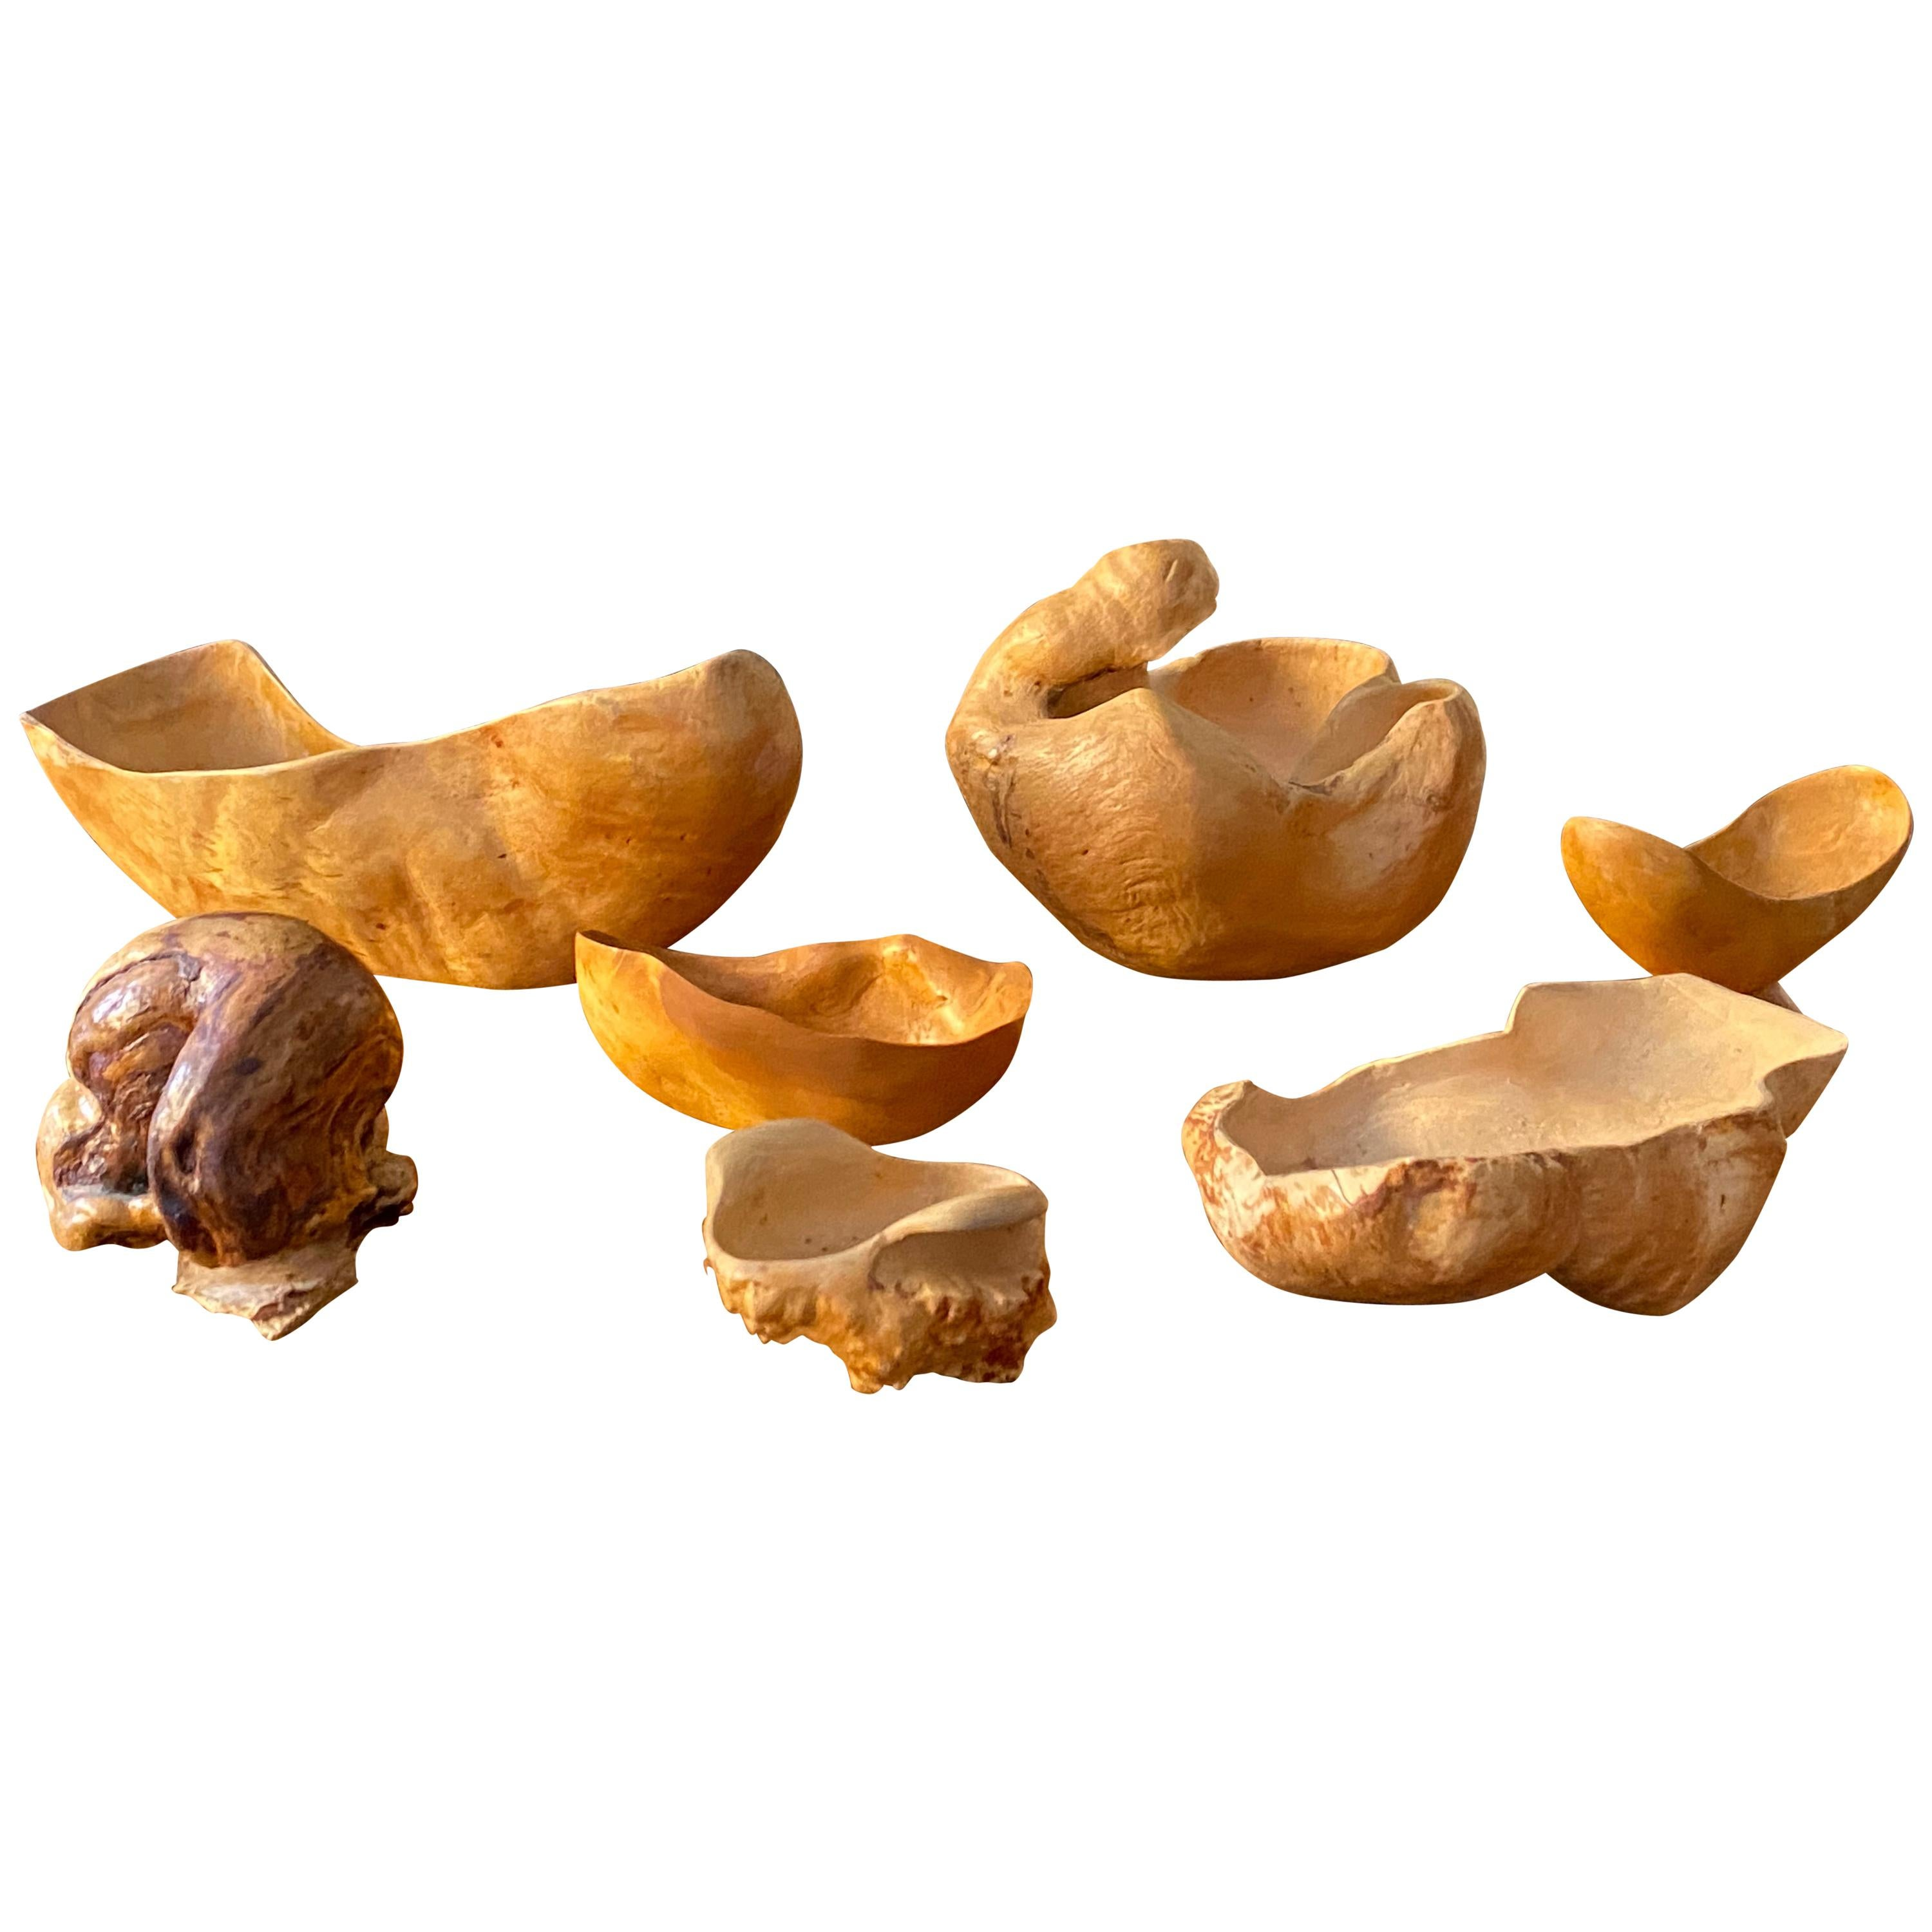 Organic Vintage Bowls and a Sculpture Hand-Sculpted Root, Wood, Sweden, 1970s